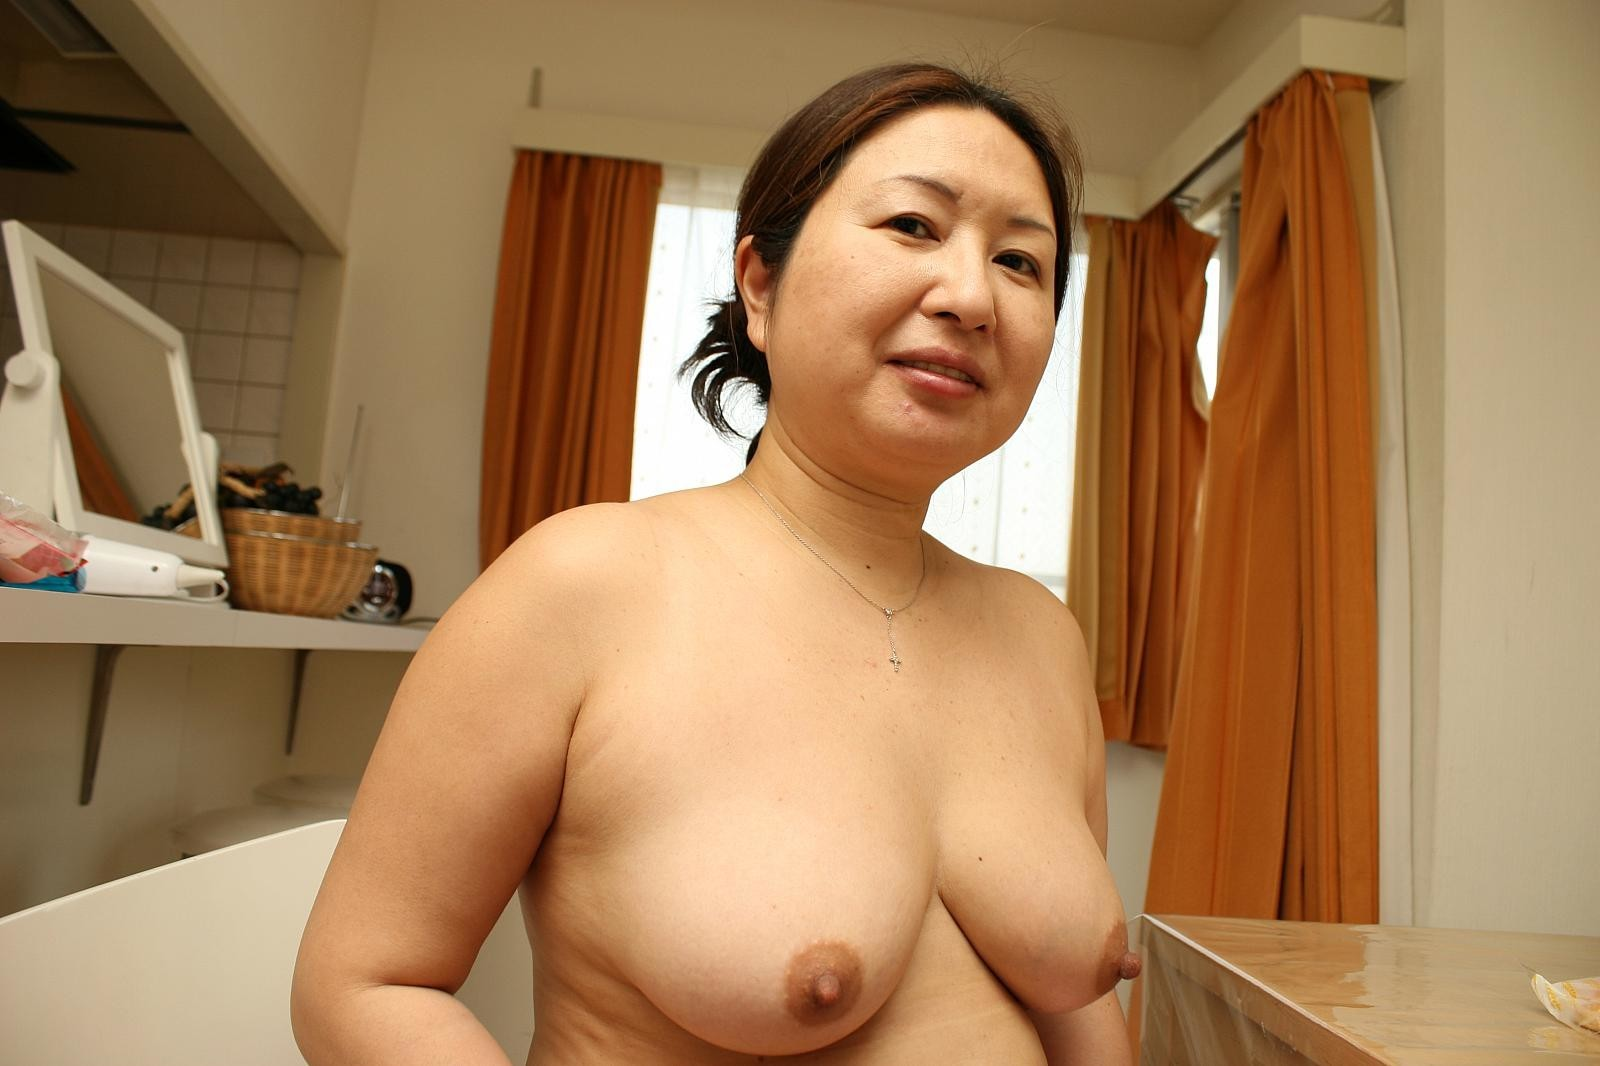 xl-asian-nudes-young-monica-potter